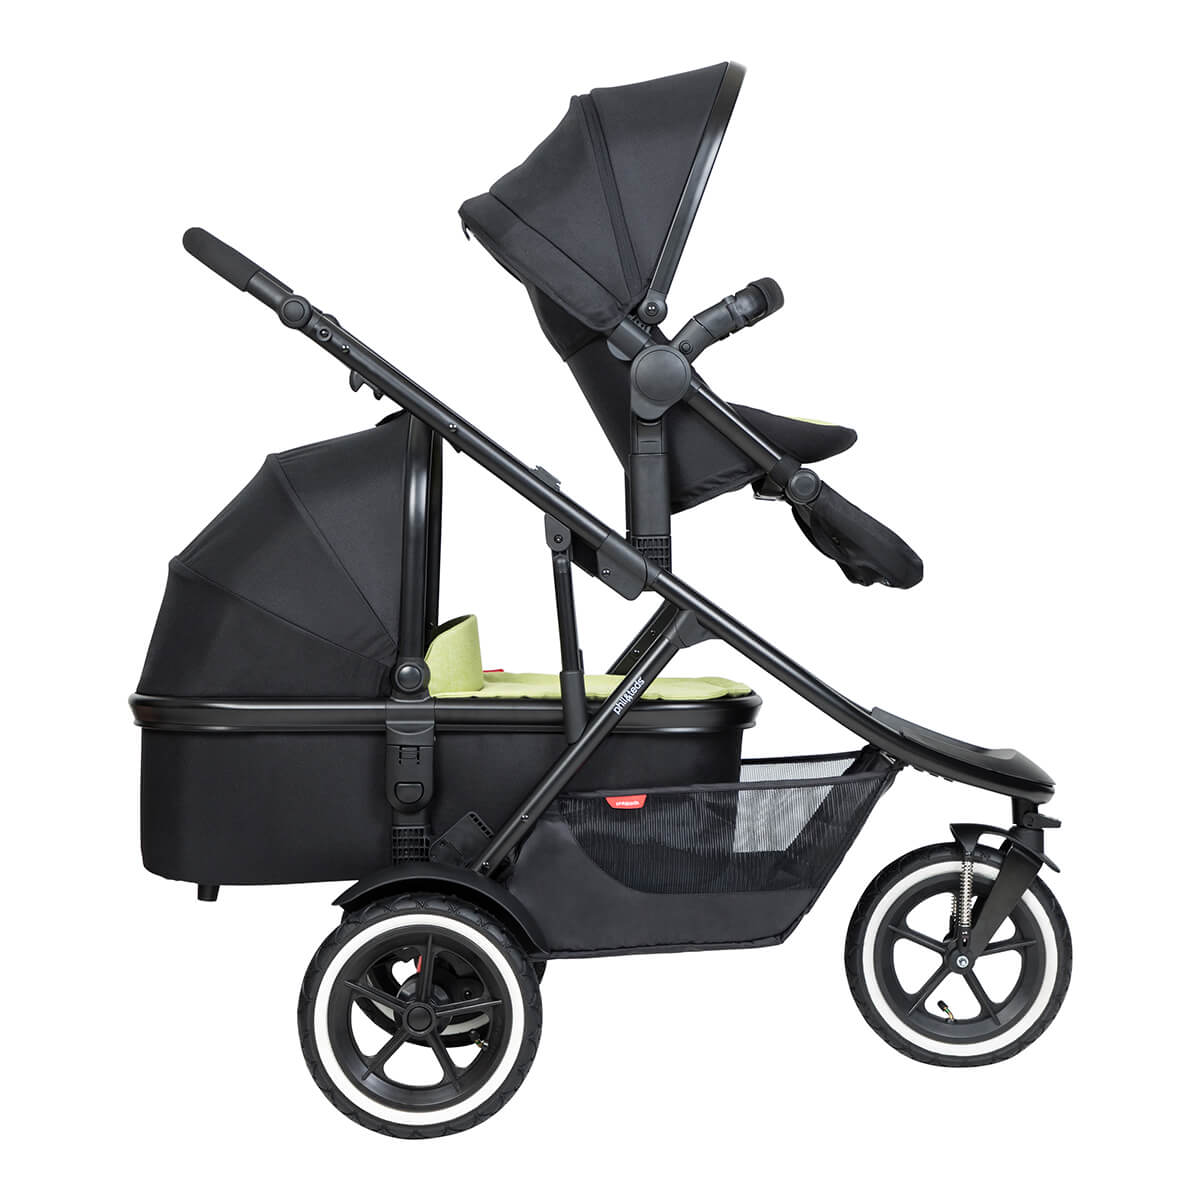 https://cdn.accentuate.io/4363395924021/19118870659125/philteds-sport-buggy-with-double-kit-extended-clip-and-snug-carrycot-side-view-v1626403801590.jpg?1200x1200